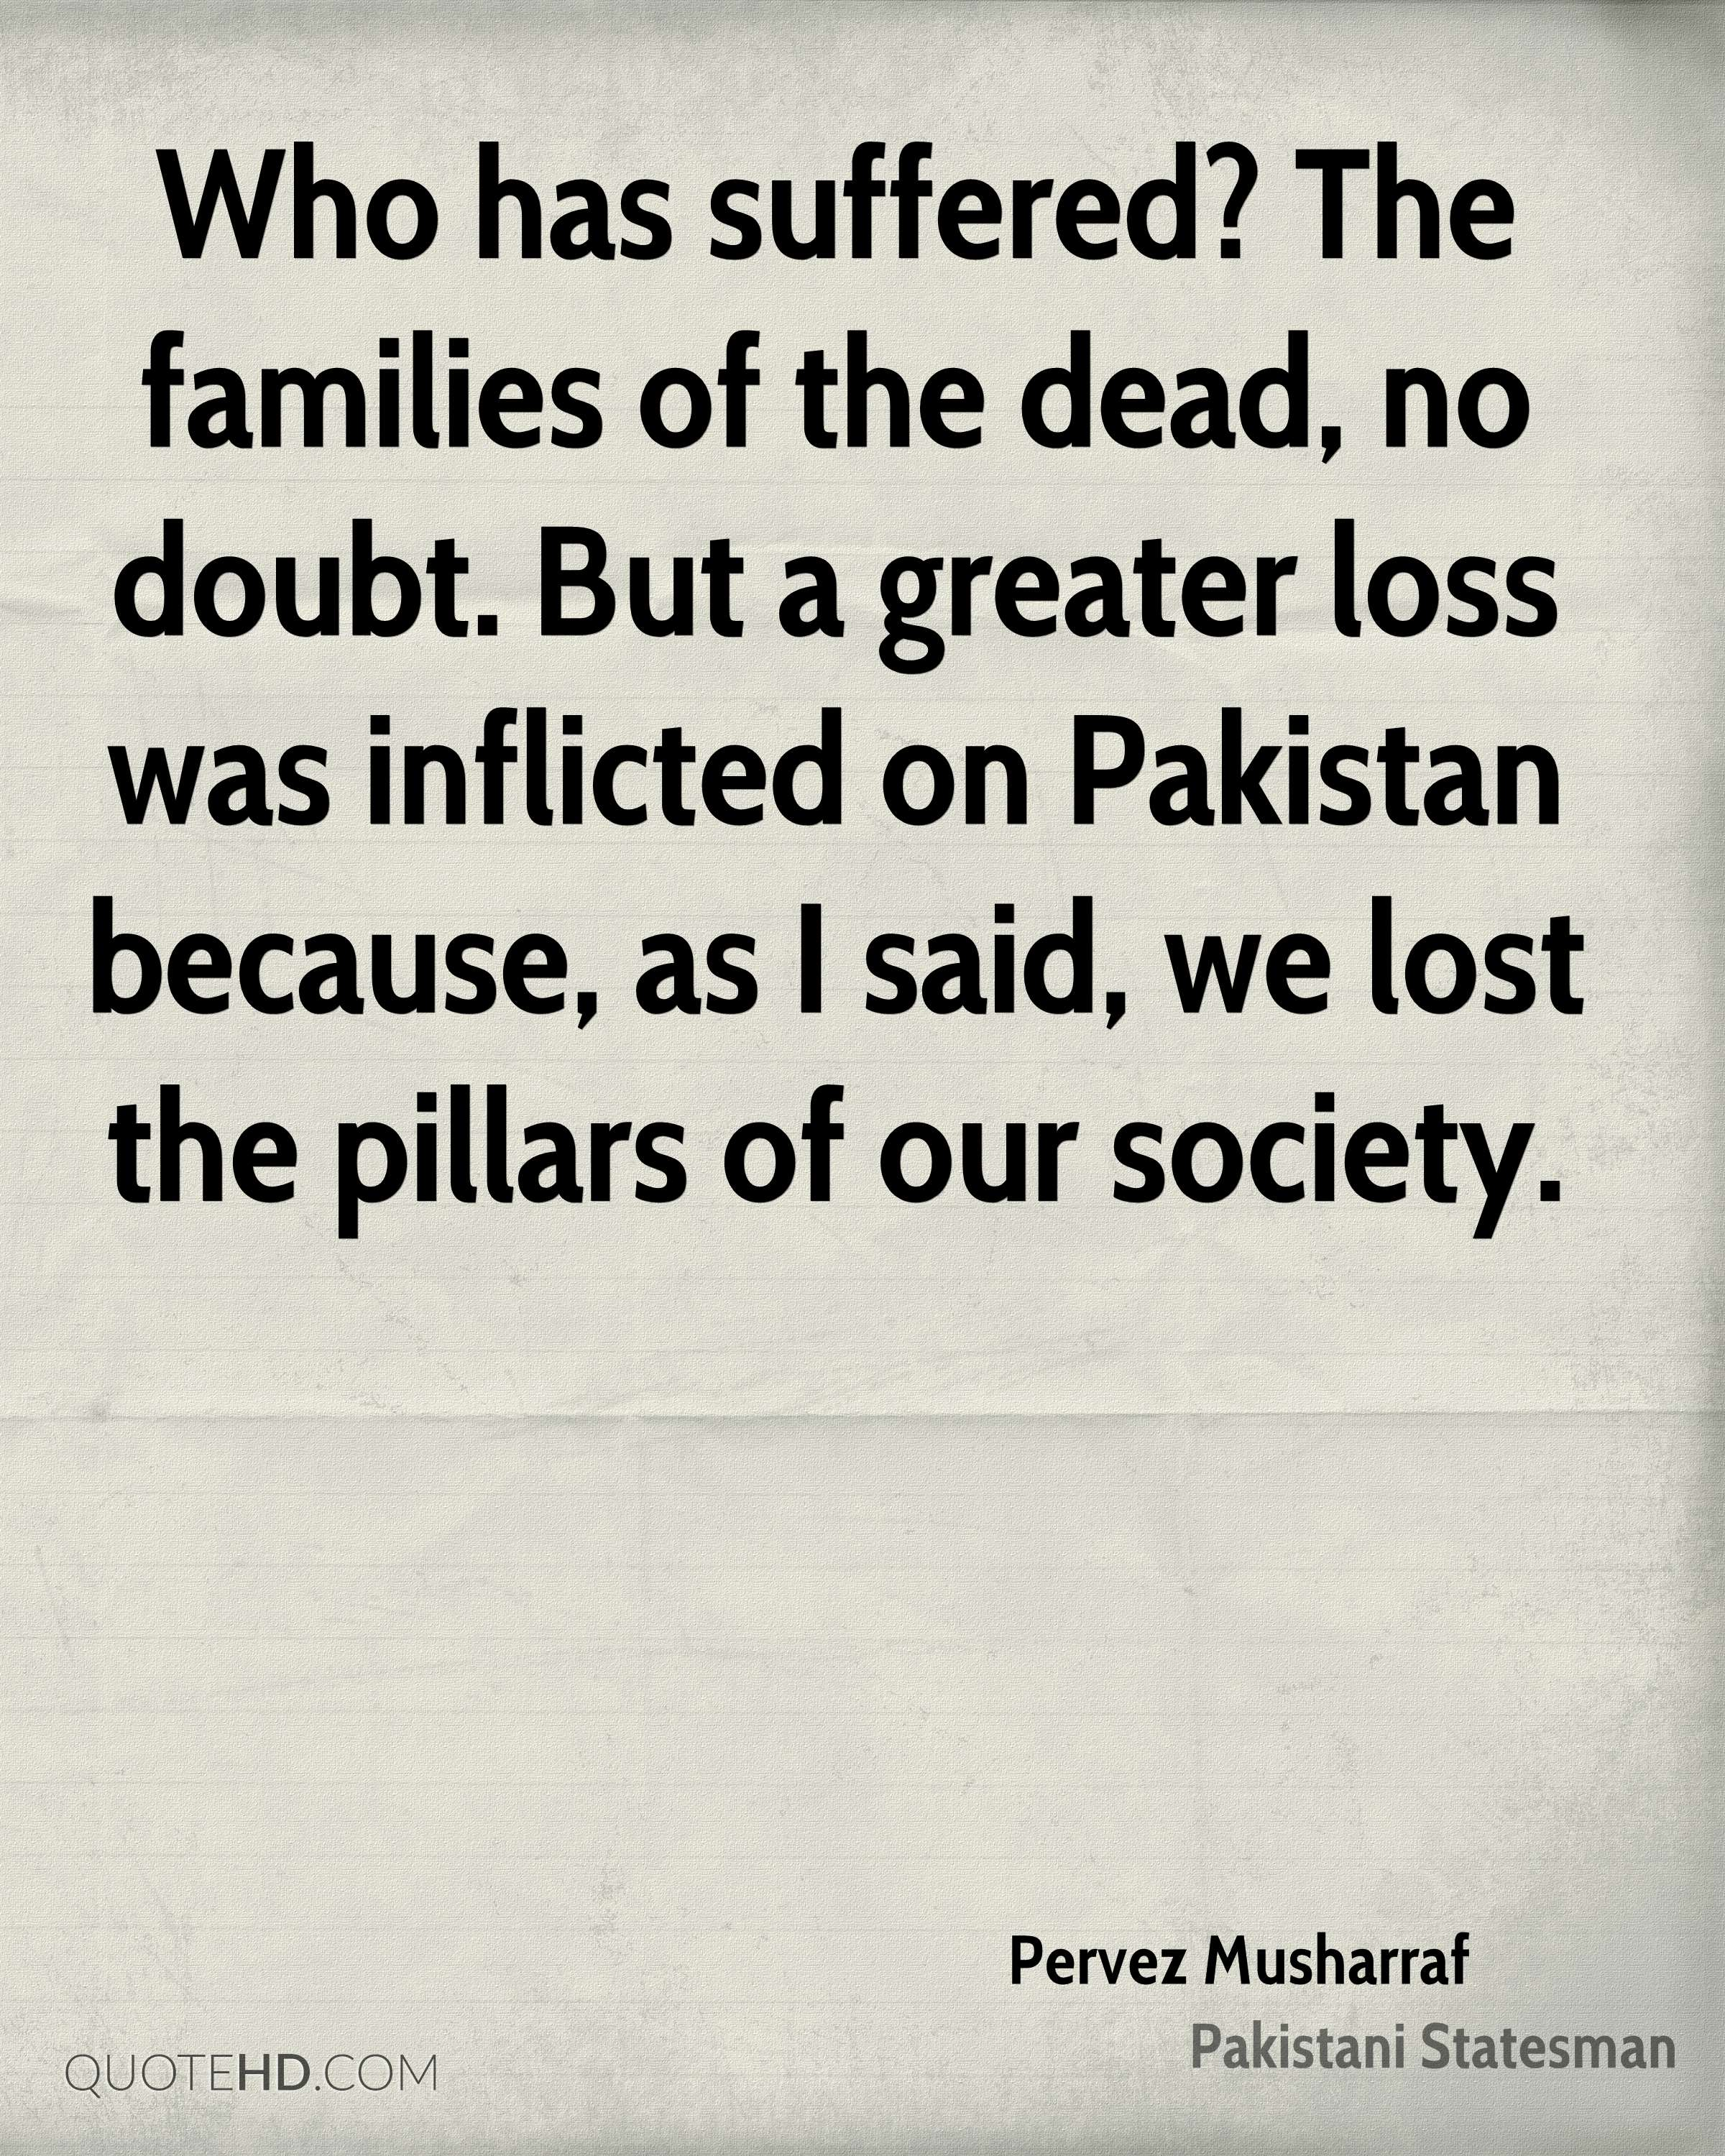 Who has suffered? The families of the dead, no doubt. But a greater loss was inflicted on Pakistan because, as I said, we lost the pillars of our society.